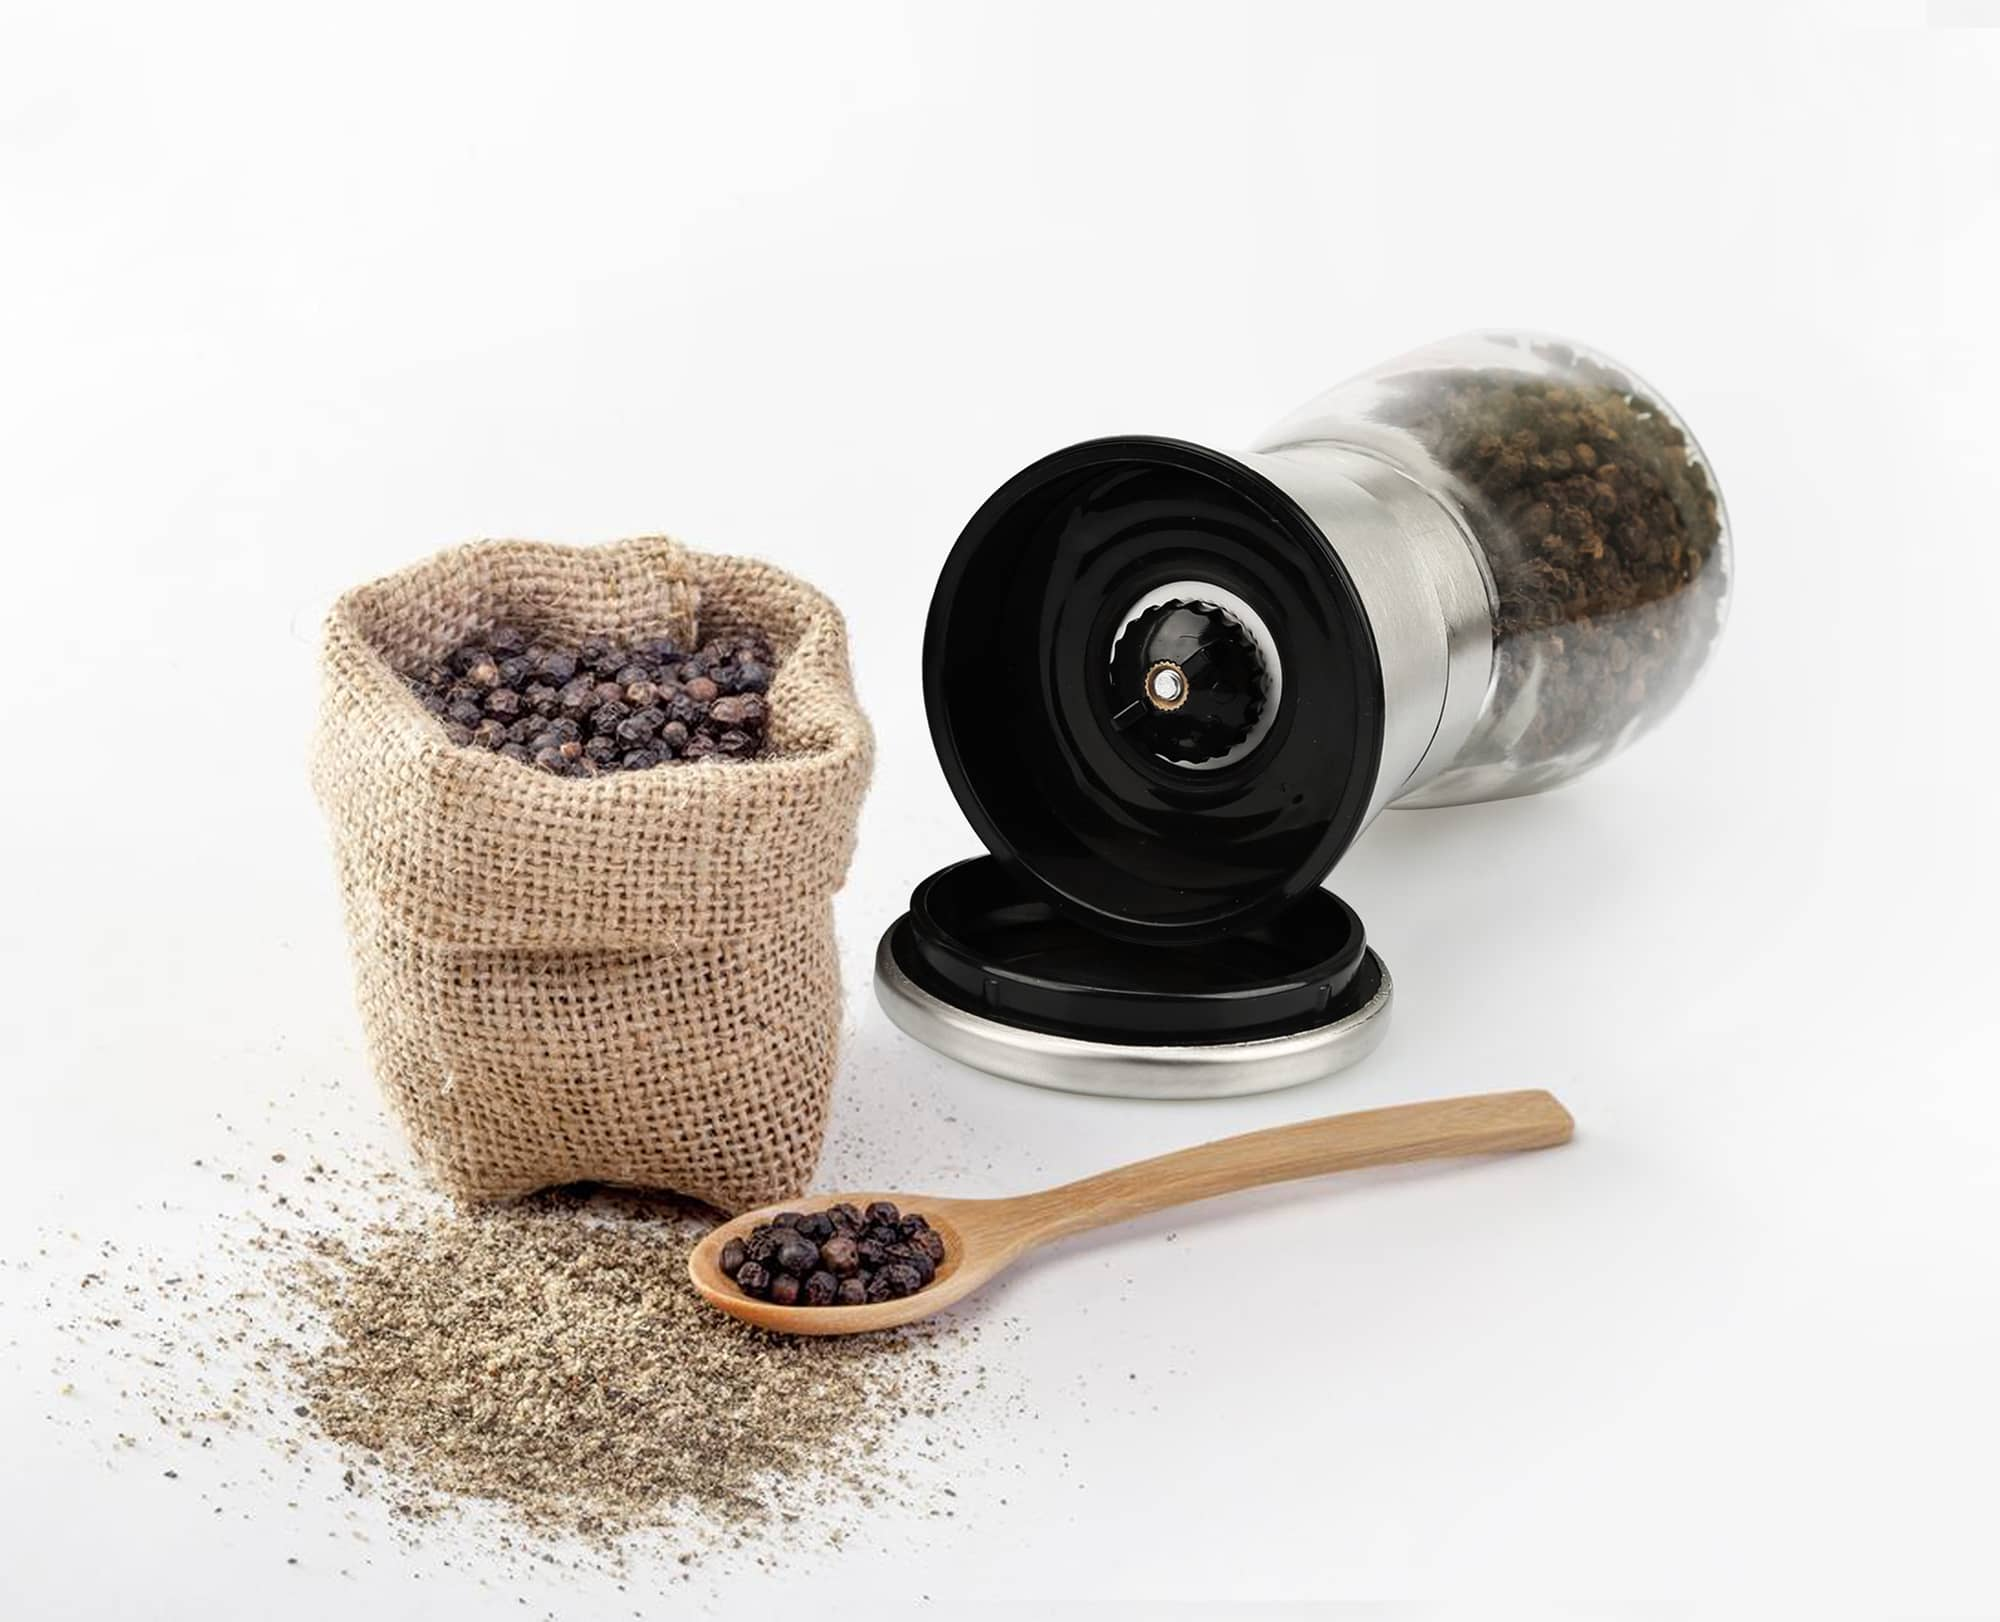 Benchusch Pepper Mill and The Black Pepper Pouch